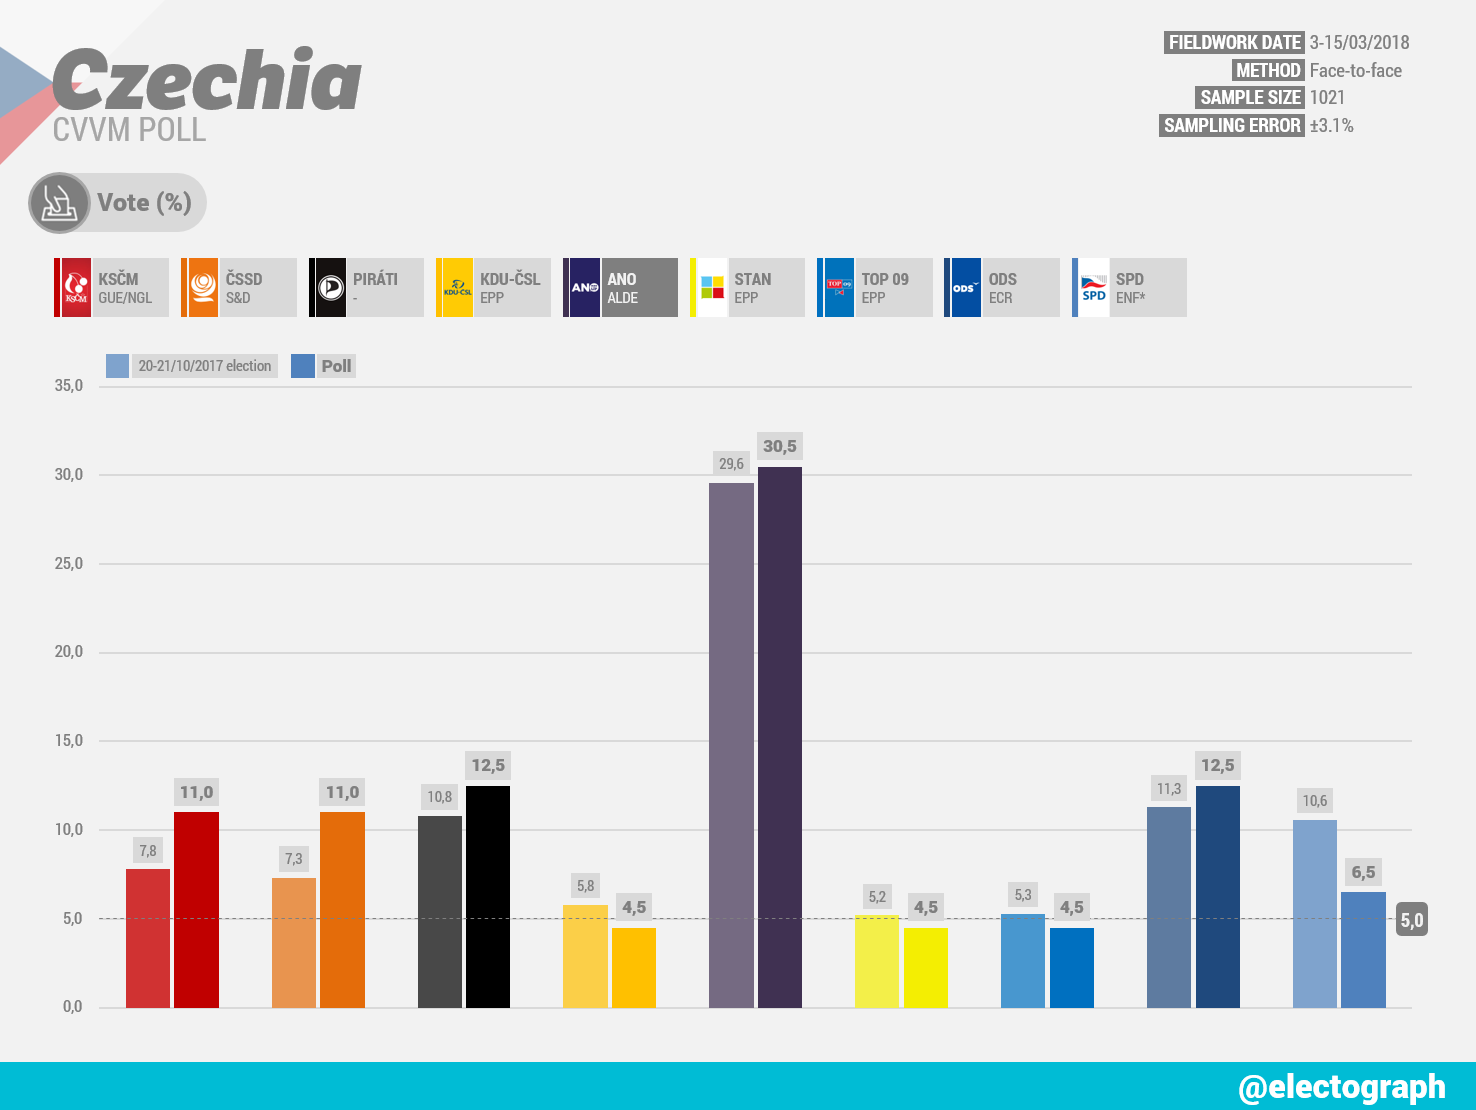 CZECHIA CVVM poll chart, March 2018